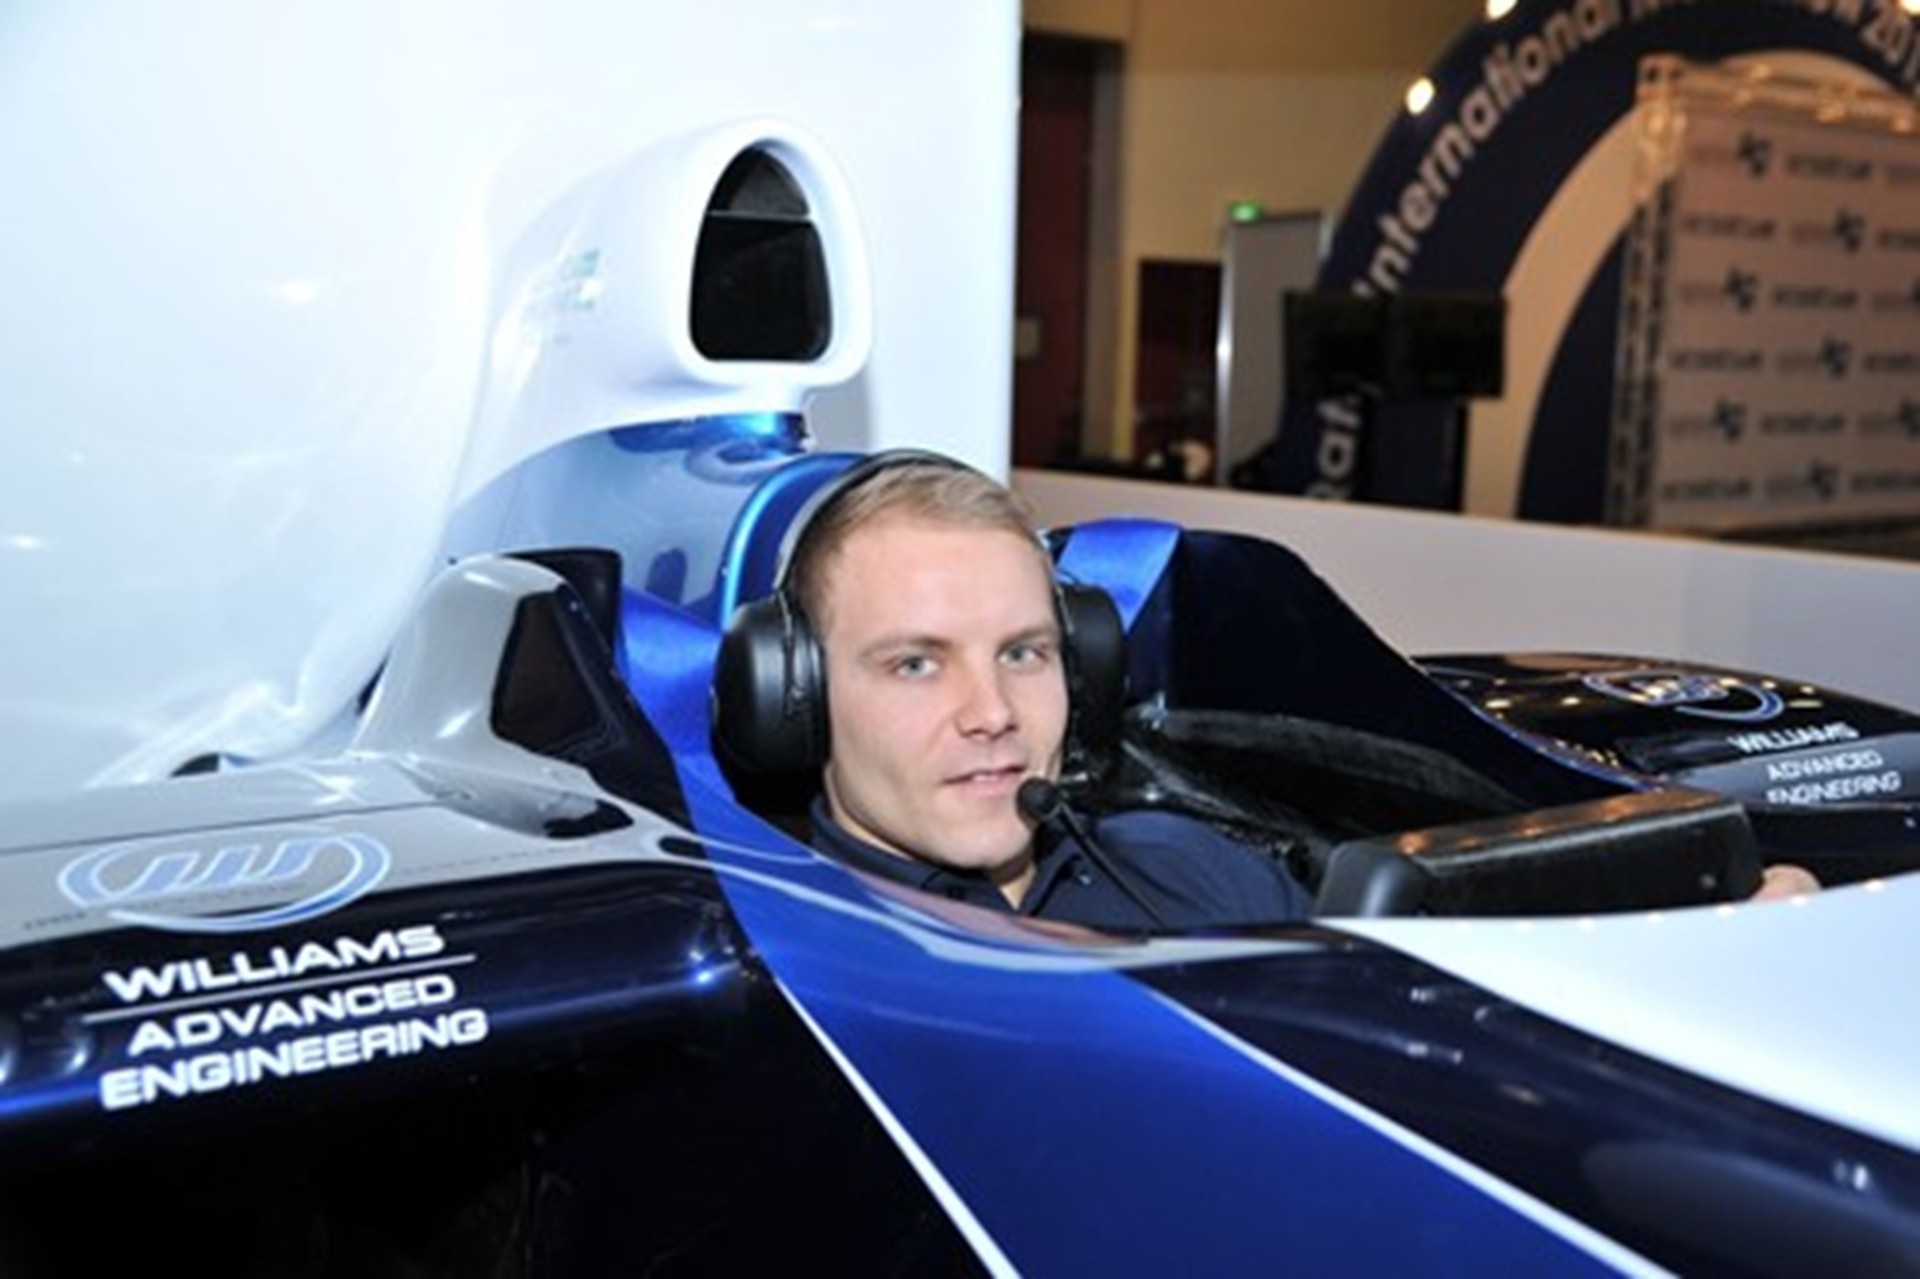 Valtteri-Bottas-williams-advanced-engineering